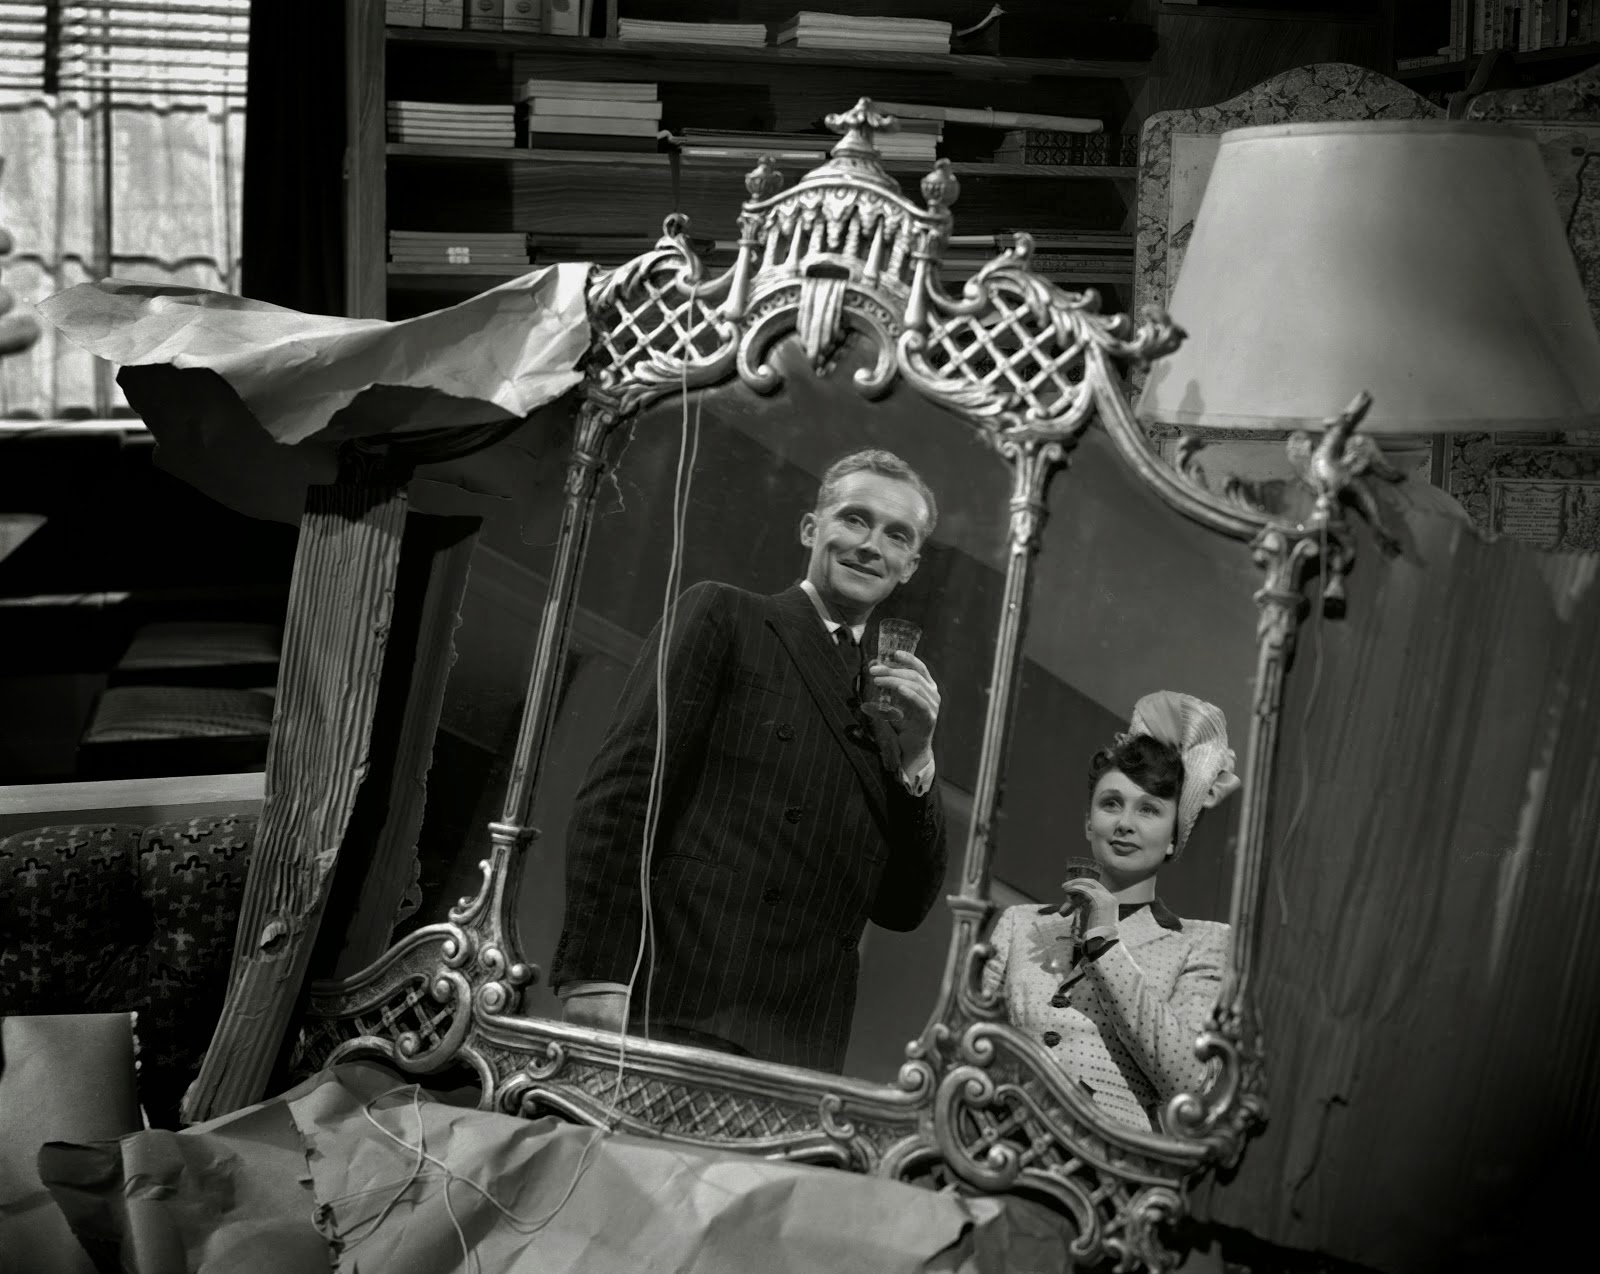 Husband and wife Ralph Michael and Googie Withers in The Haunted Mirror episode of Dead of Night (1945)